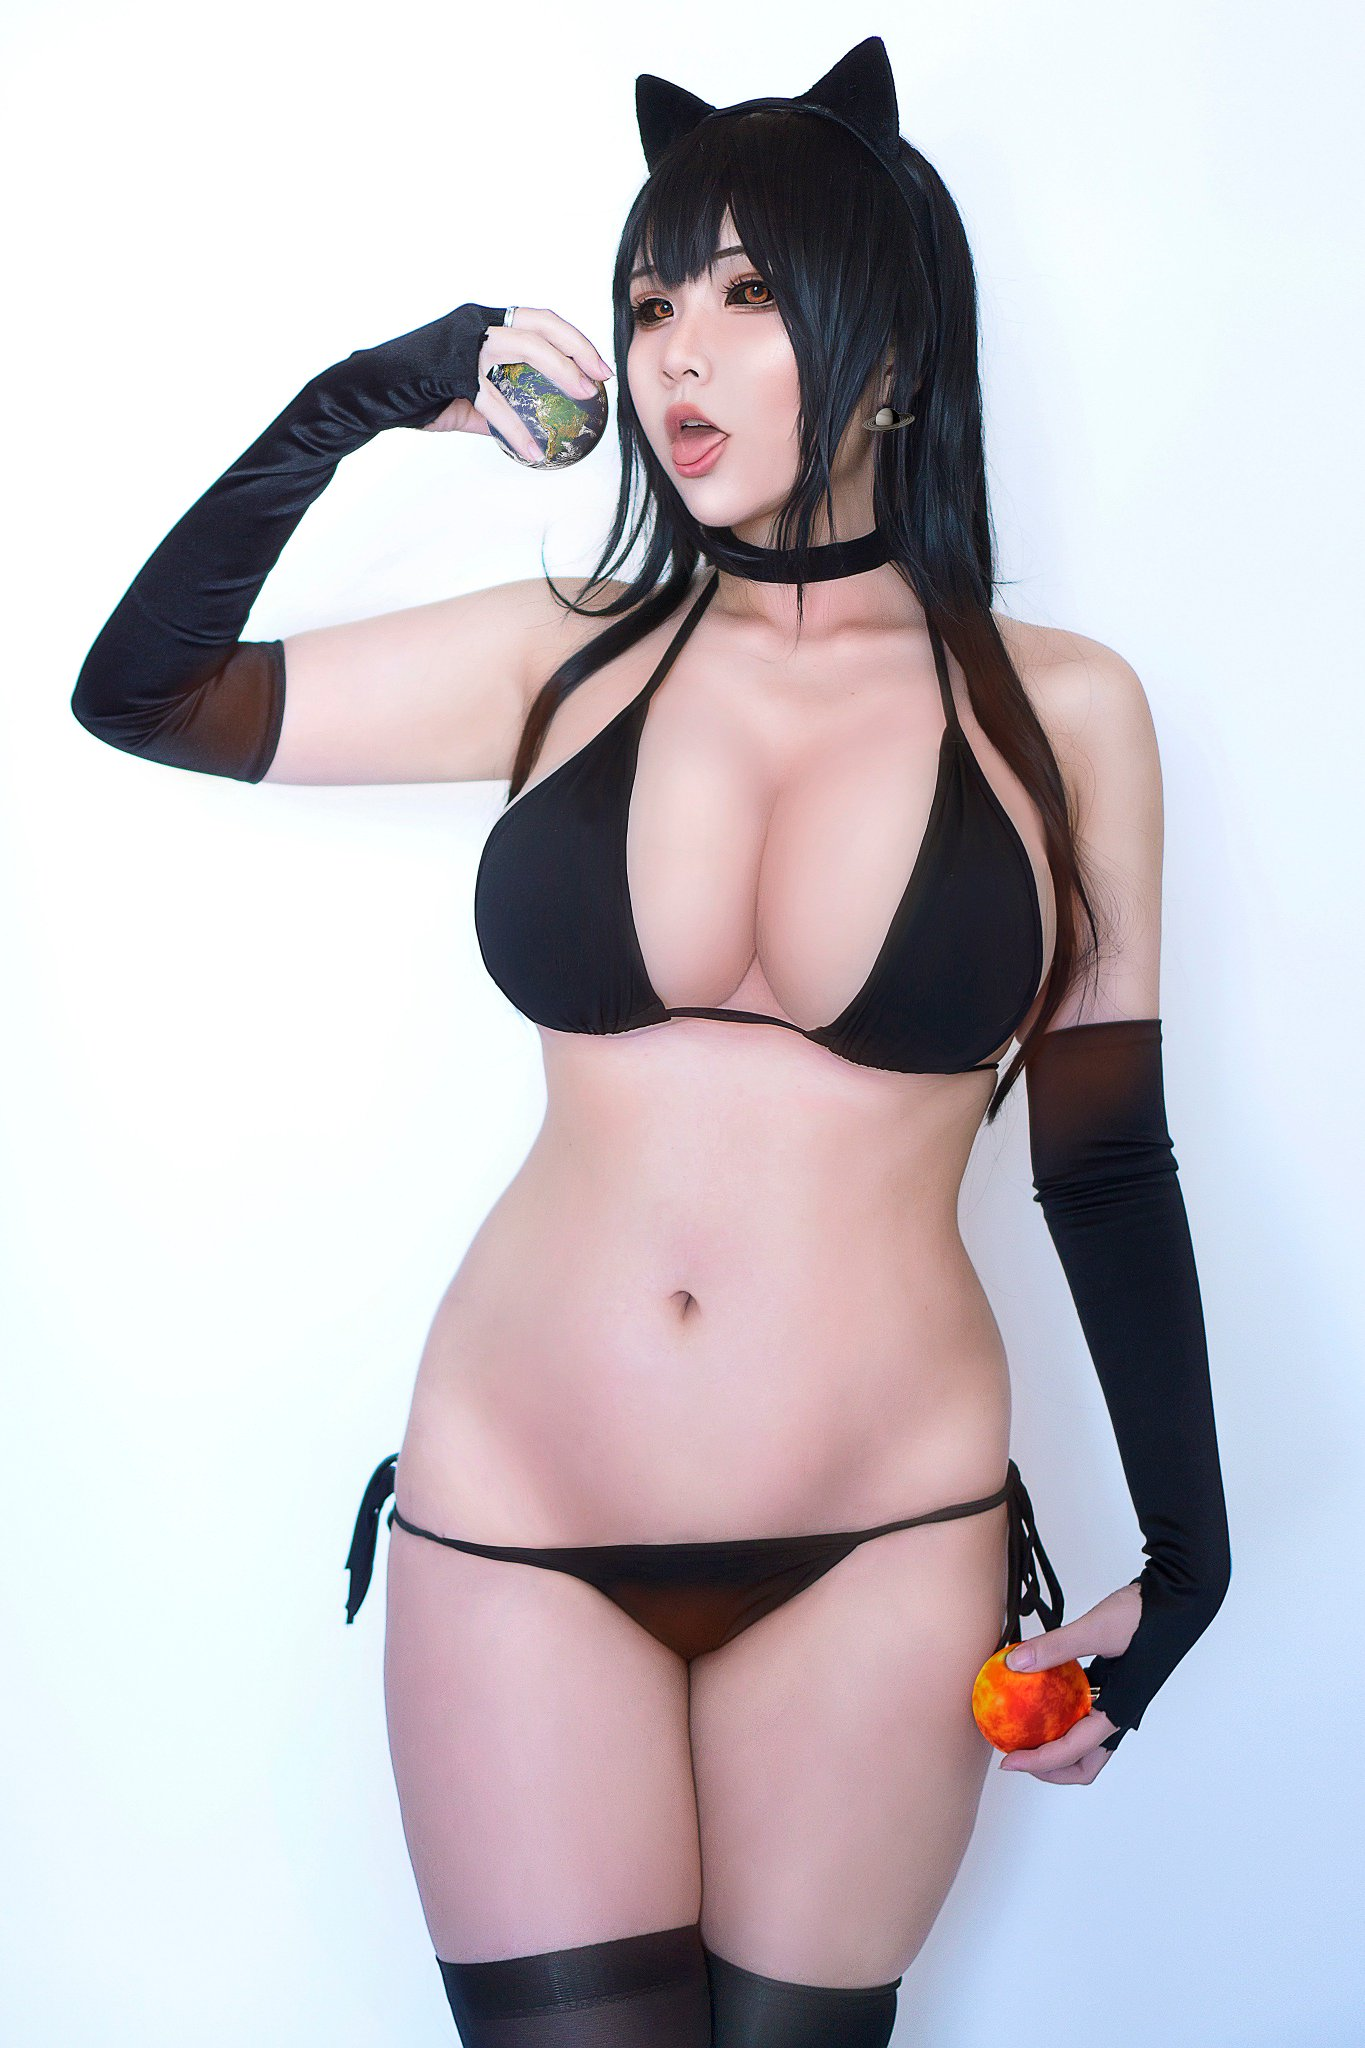 Hana Bunny Black Hole Chan Cosplay